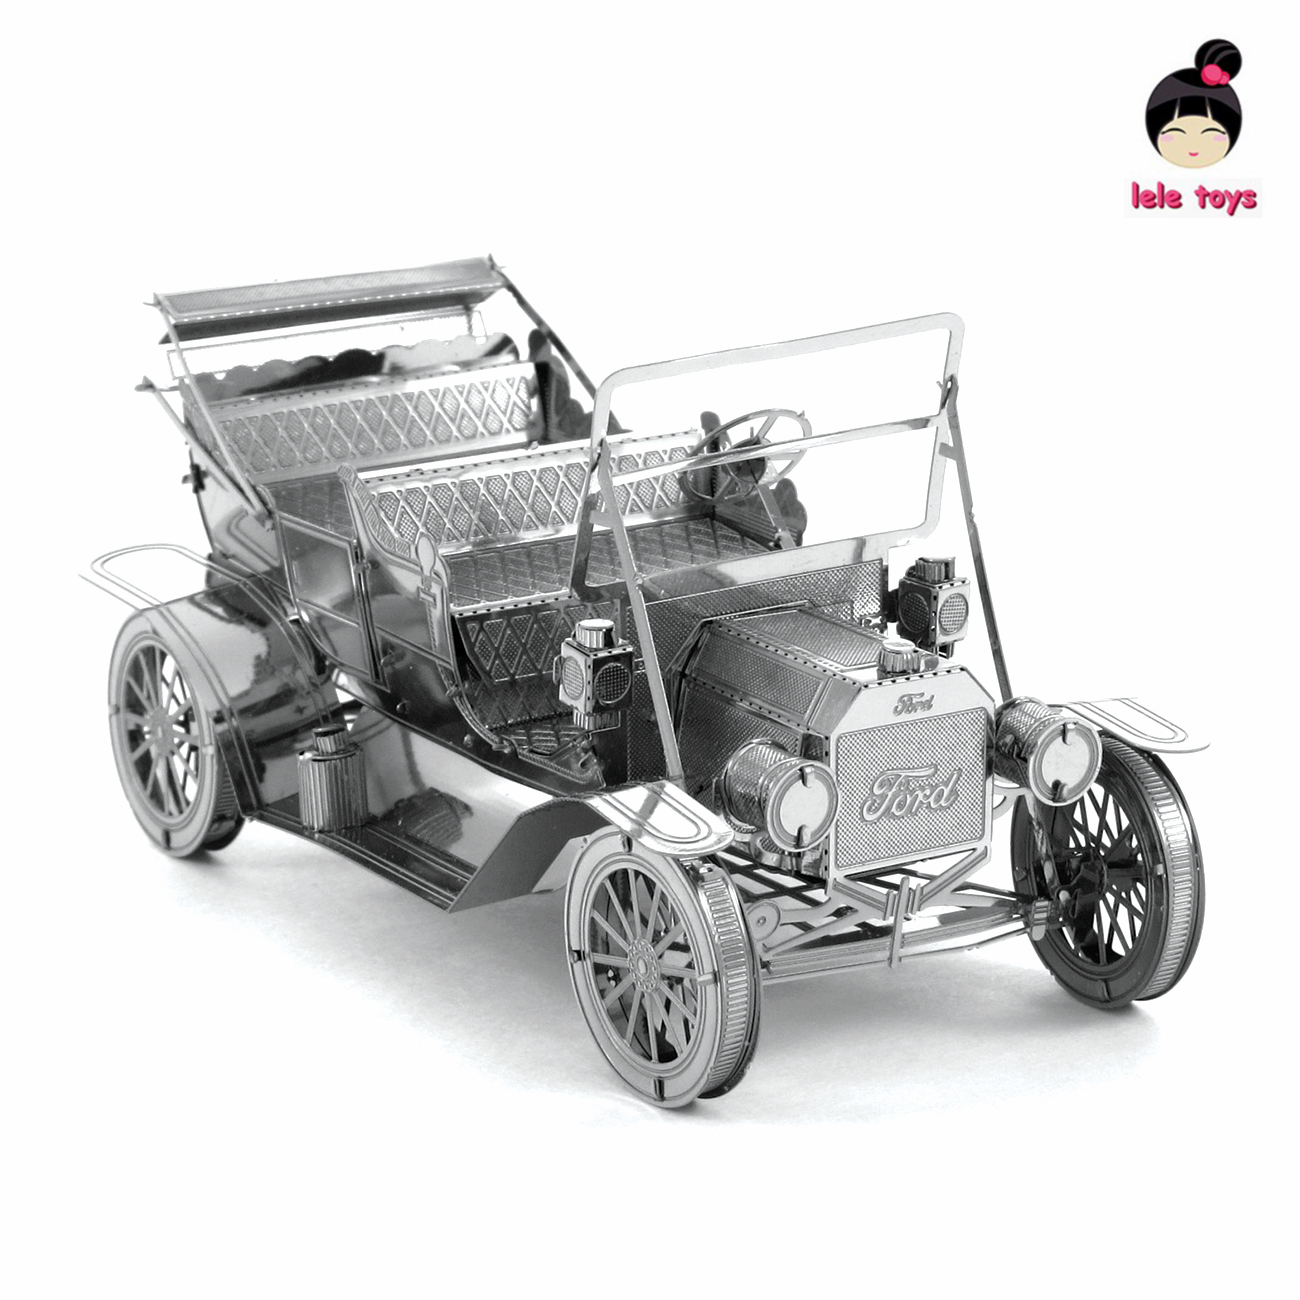 VEHICLES 3D Metal Model Puzzles 1908 FORD MODEL T Chinese Metal Earth Stainless Steel Creative Gifts ICONX(China (Mainland))